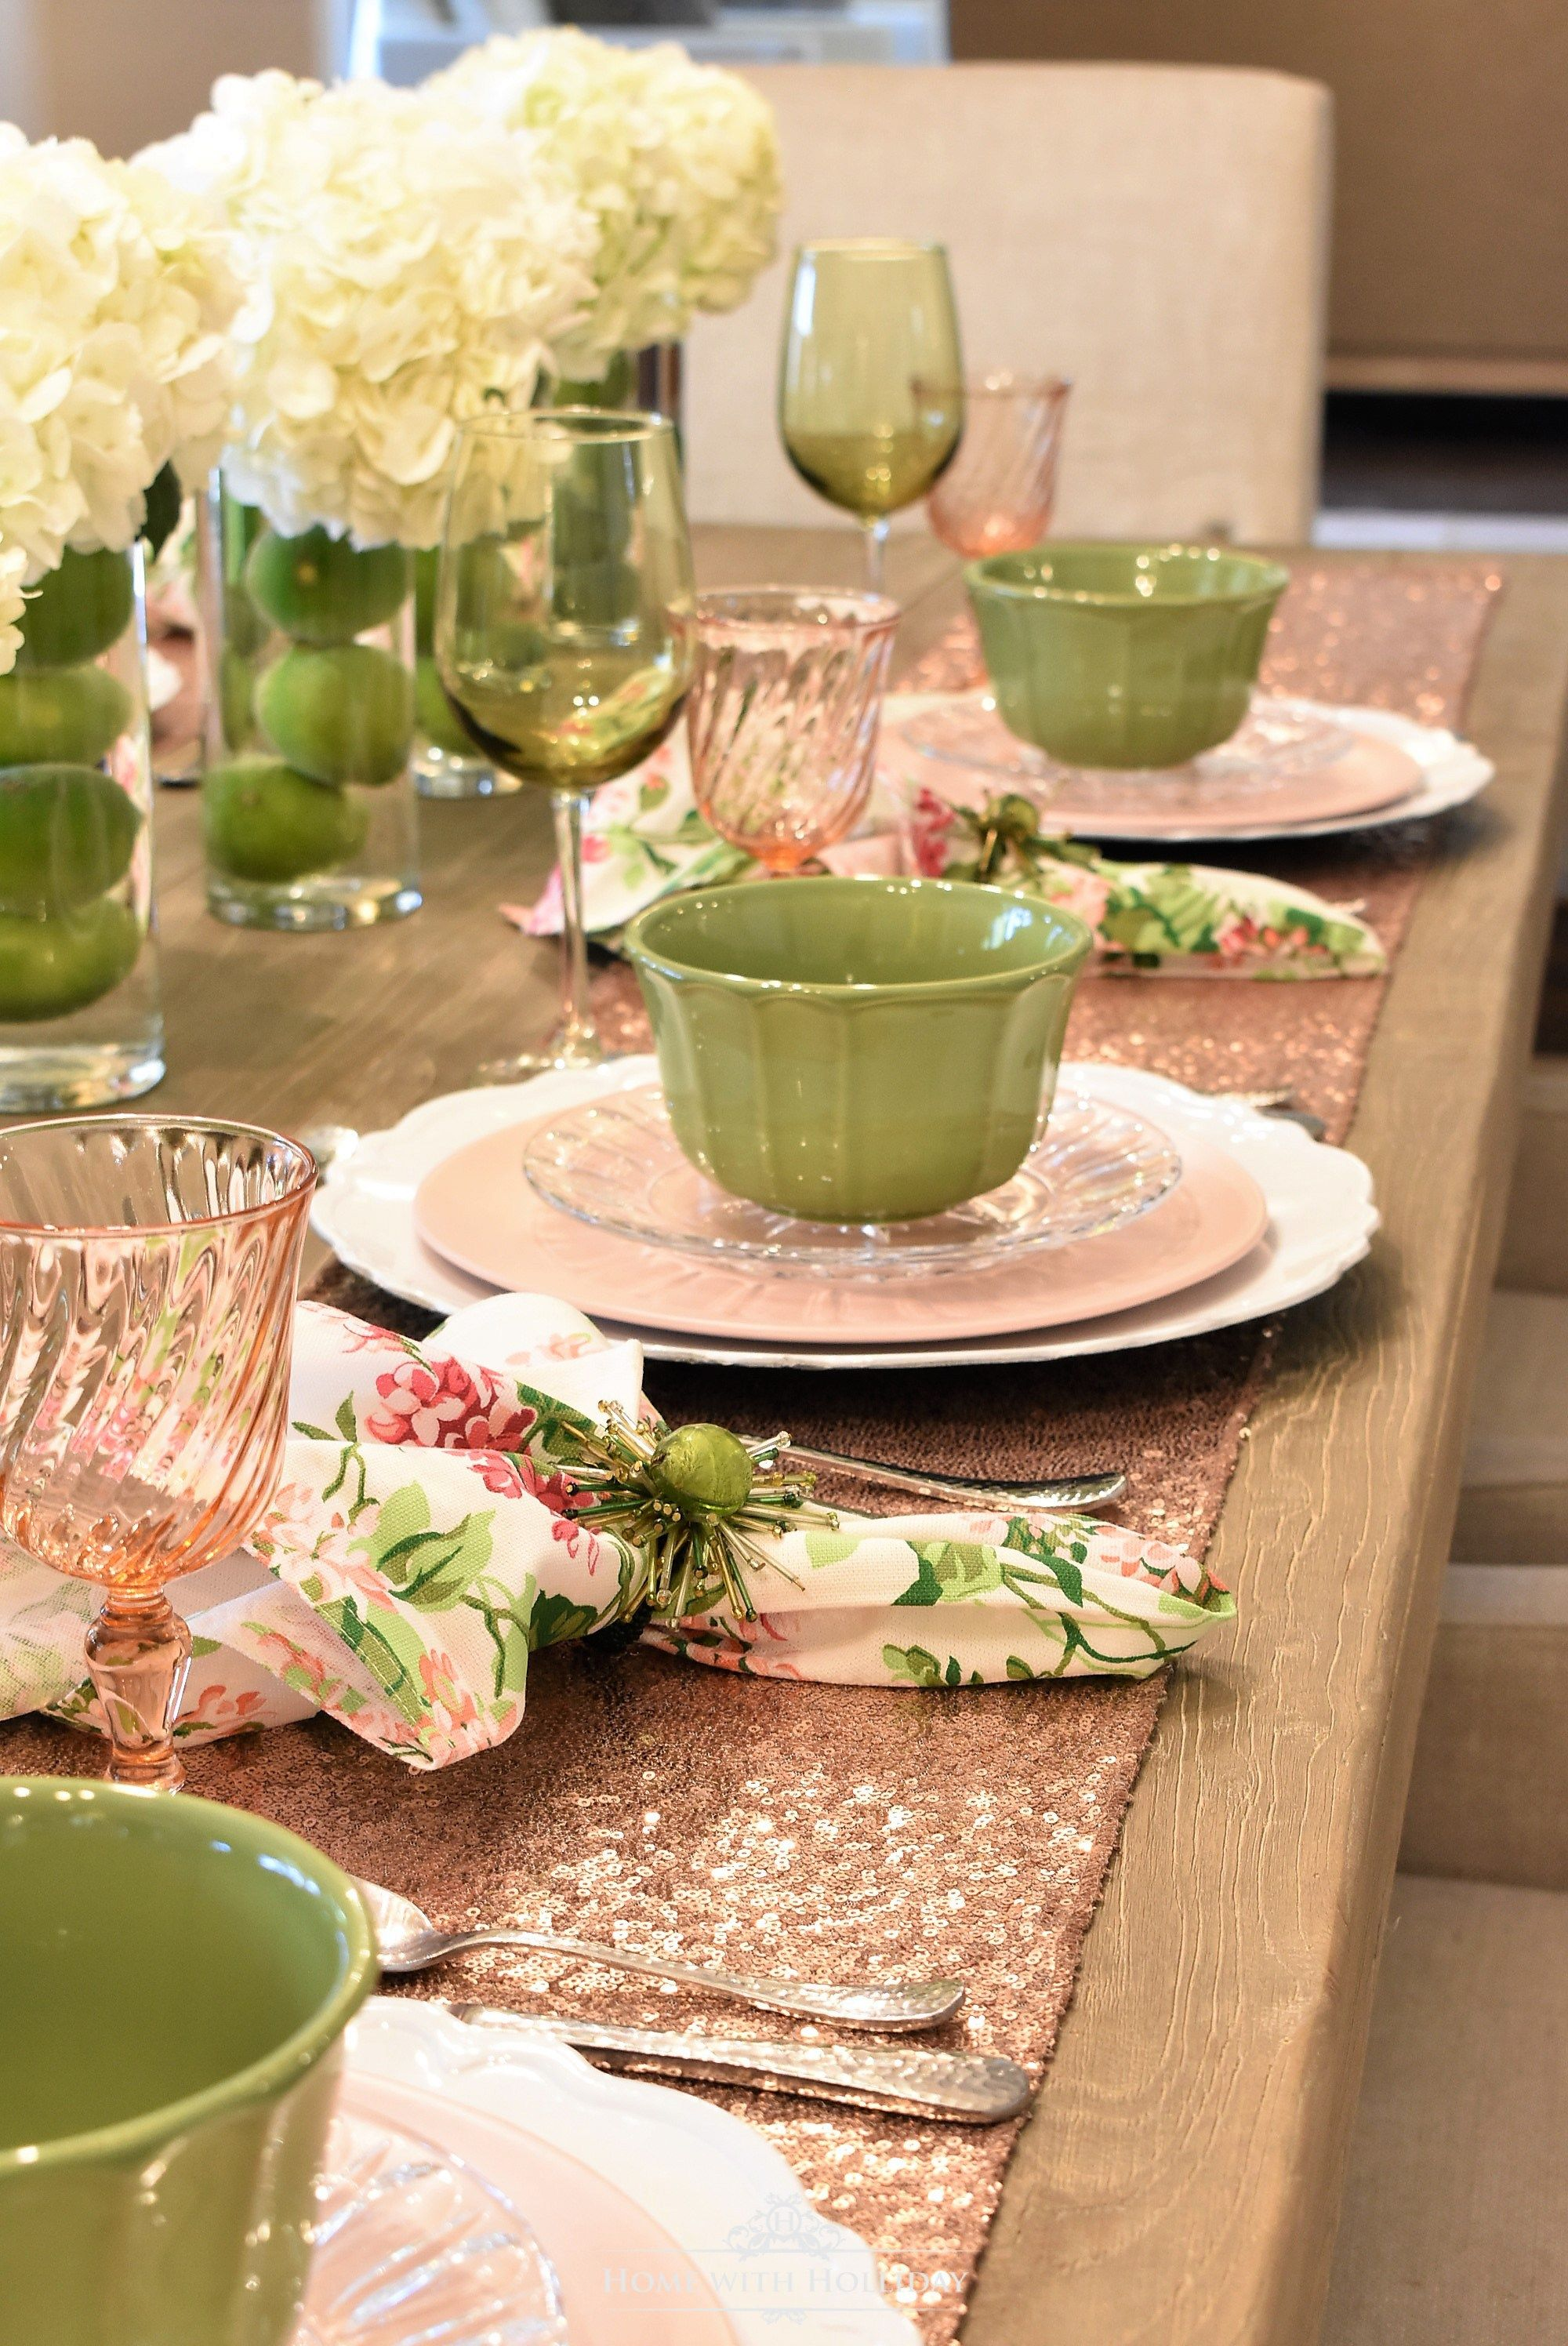 Spring Table Setting For Mother S Day Luncheon Home With Holliday Spring Table Settings Spring Table Decor Table Setting Decor